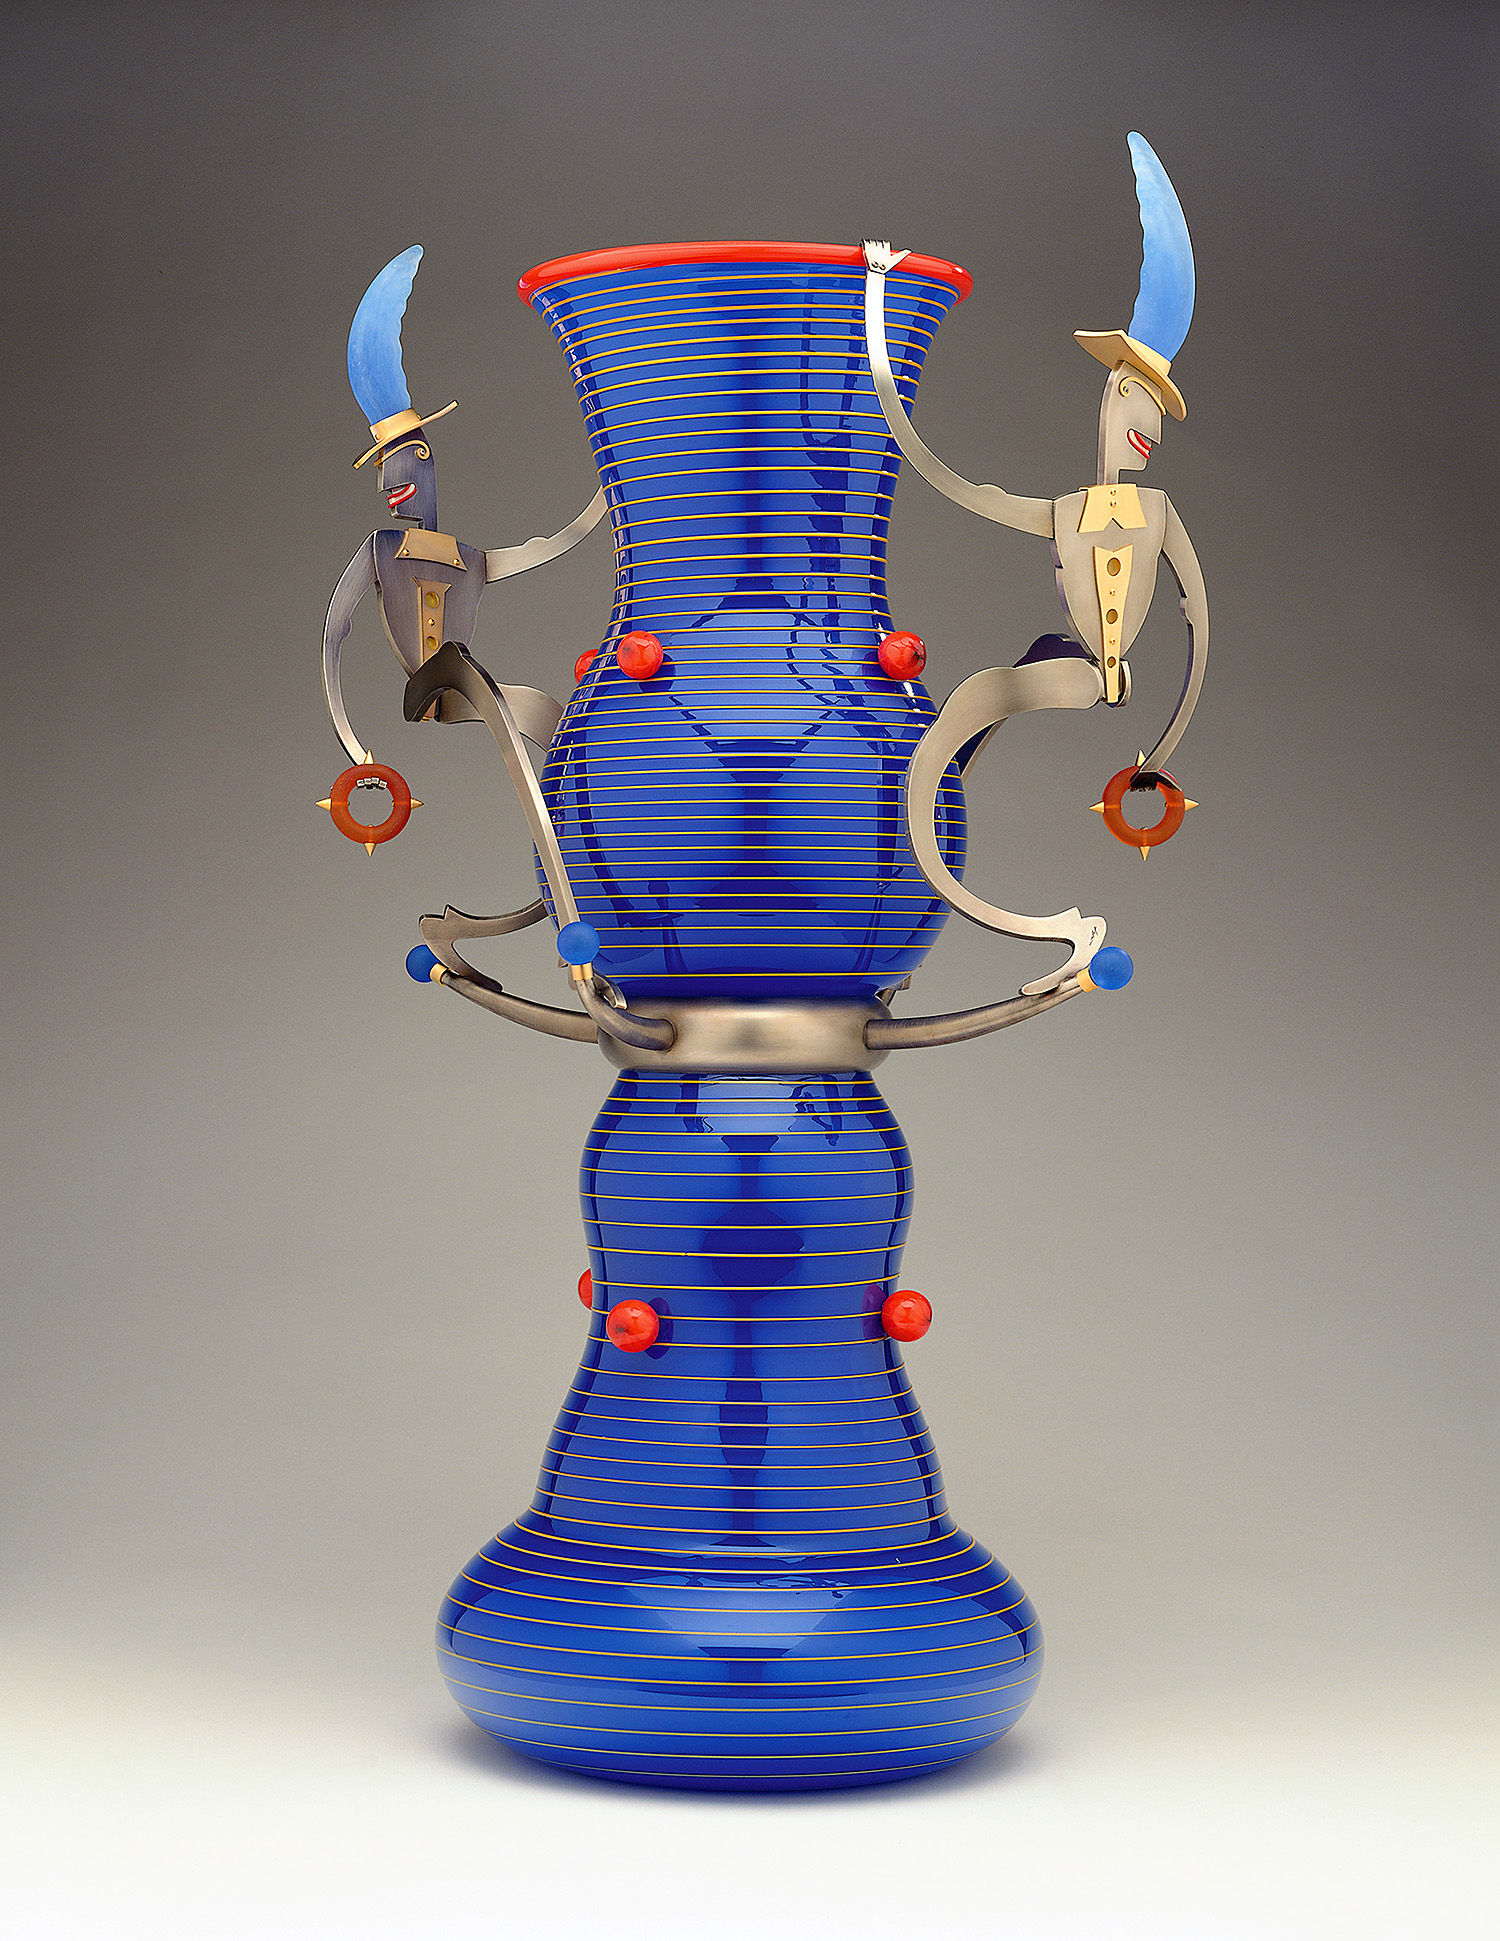 Good Grandees   2000. Blown glass, nickel and gold-plated bronze, Vitrolite, pate de verre. 34 x 19½ x 14""